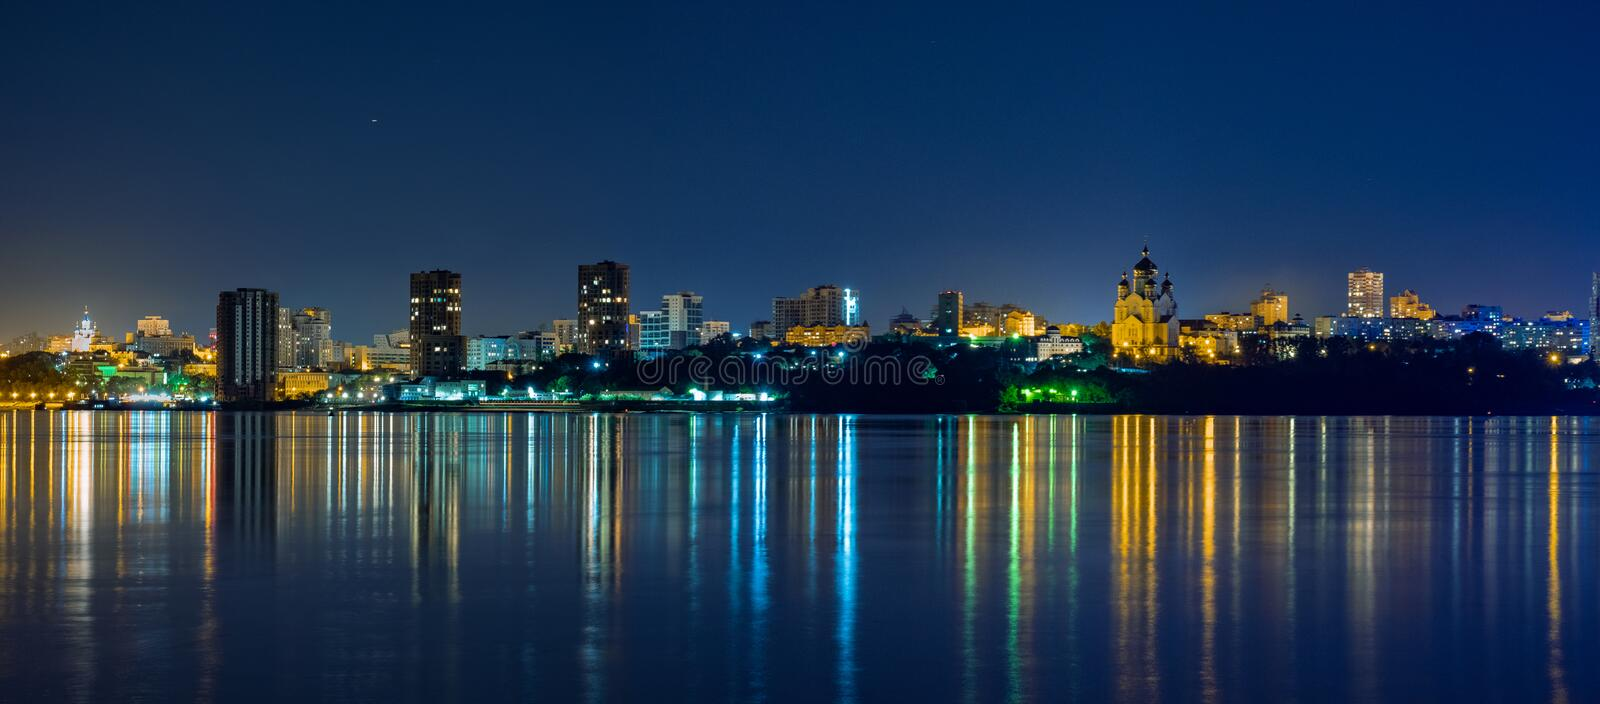 Night View of the city of Khabarovsk from the Amur river. Blue night sky. The night city is brightly lit with lanterns. Night View of the city of Khabarovsk stock photo